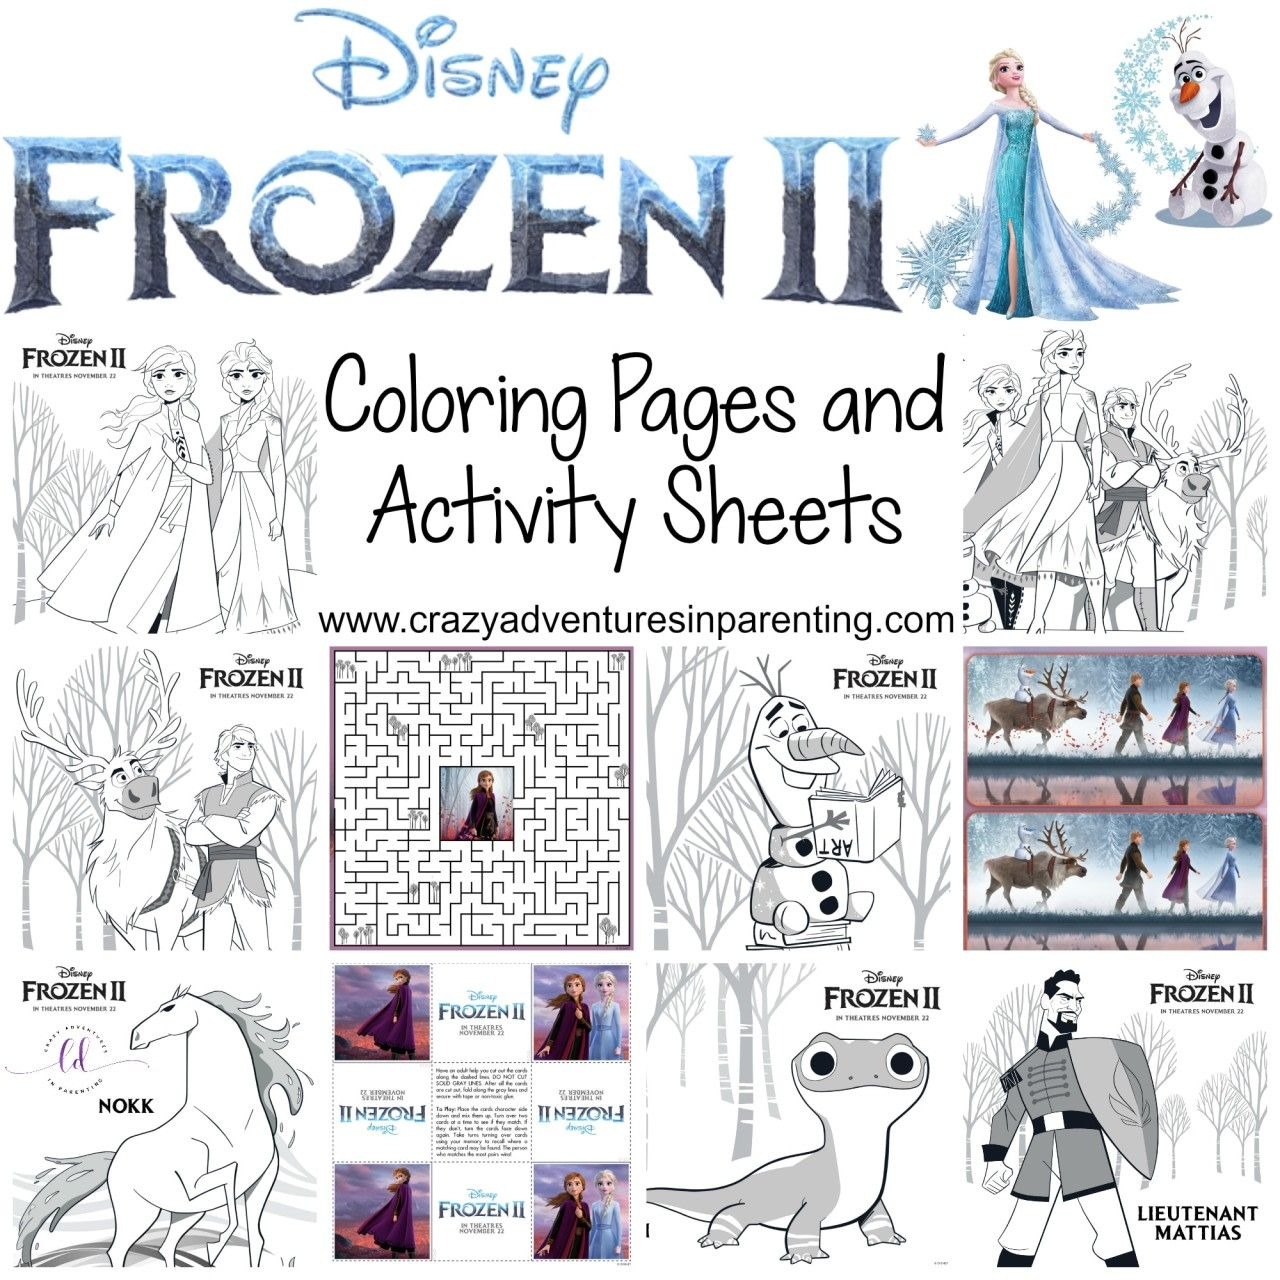 Free Printable Frozen 2 Coloring Pages And Activity Sheets In 2020 Disney Activities Activity Sheets Frozen Coloring Pages